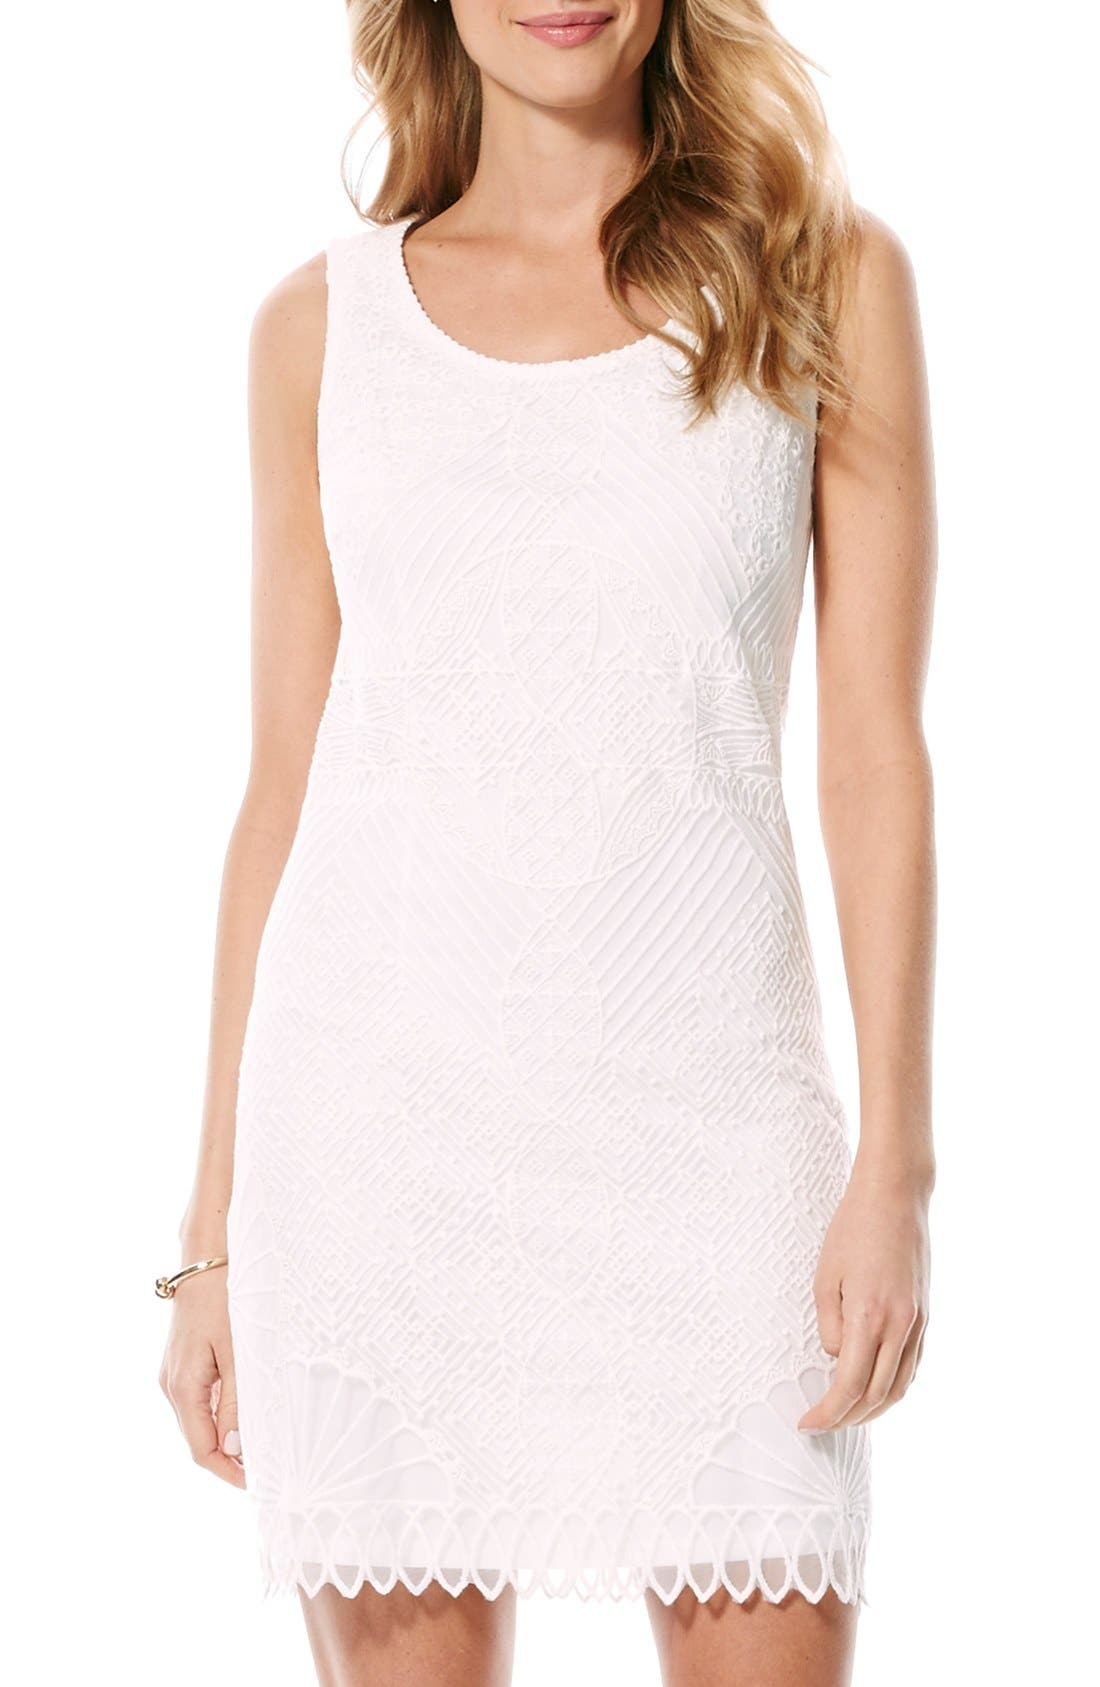 Alternate Image 1 Selected - Laundry by Shelli Segal Embroidered Sheath Dress